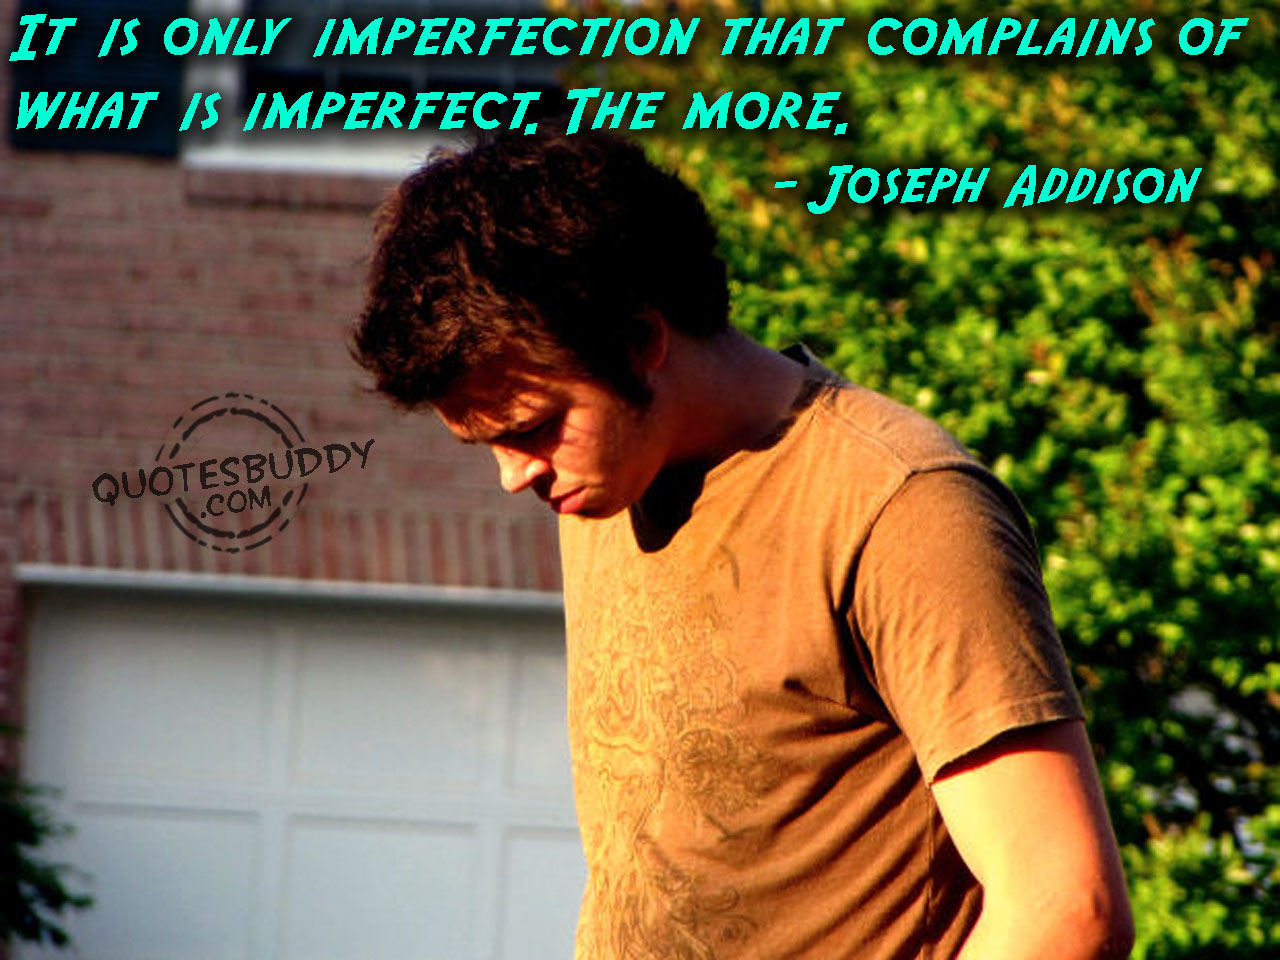 It is only imperfection that complains of what is imperfect. The more. Joseph Addison